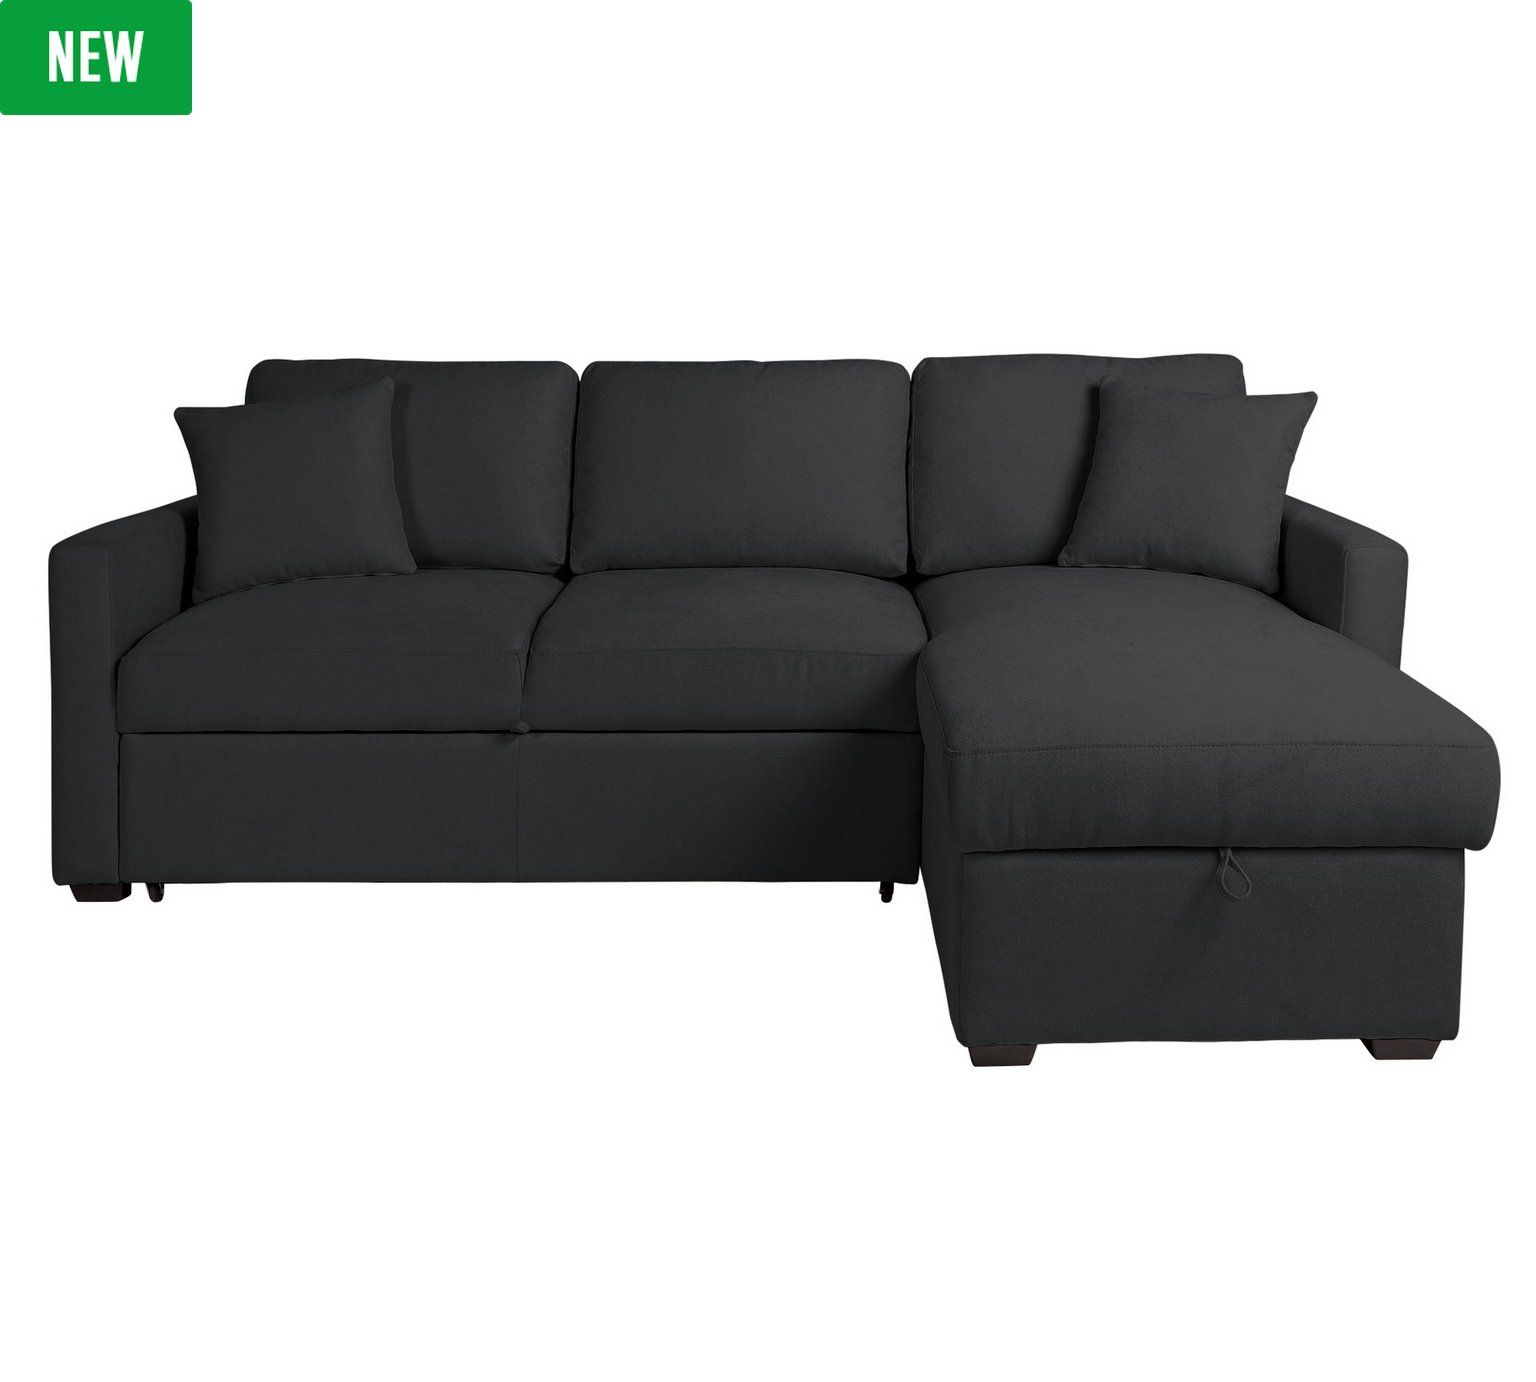 Buy Argos Home Reagan Right Corner Fabric Sofa Bed